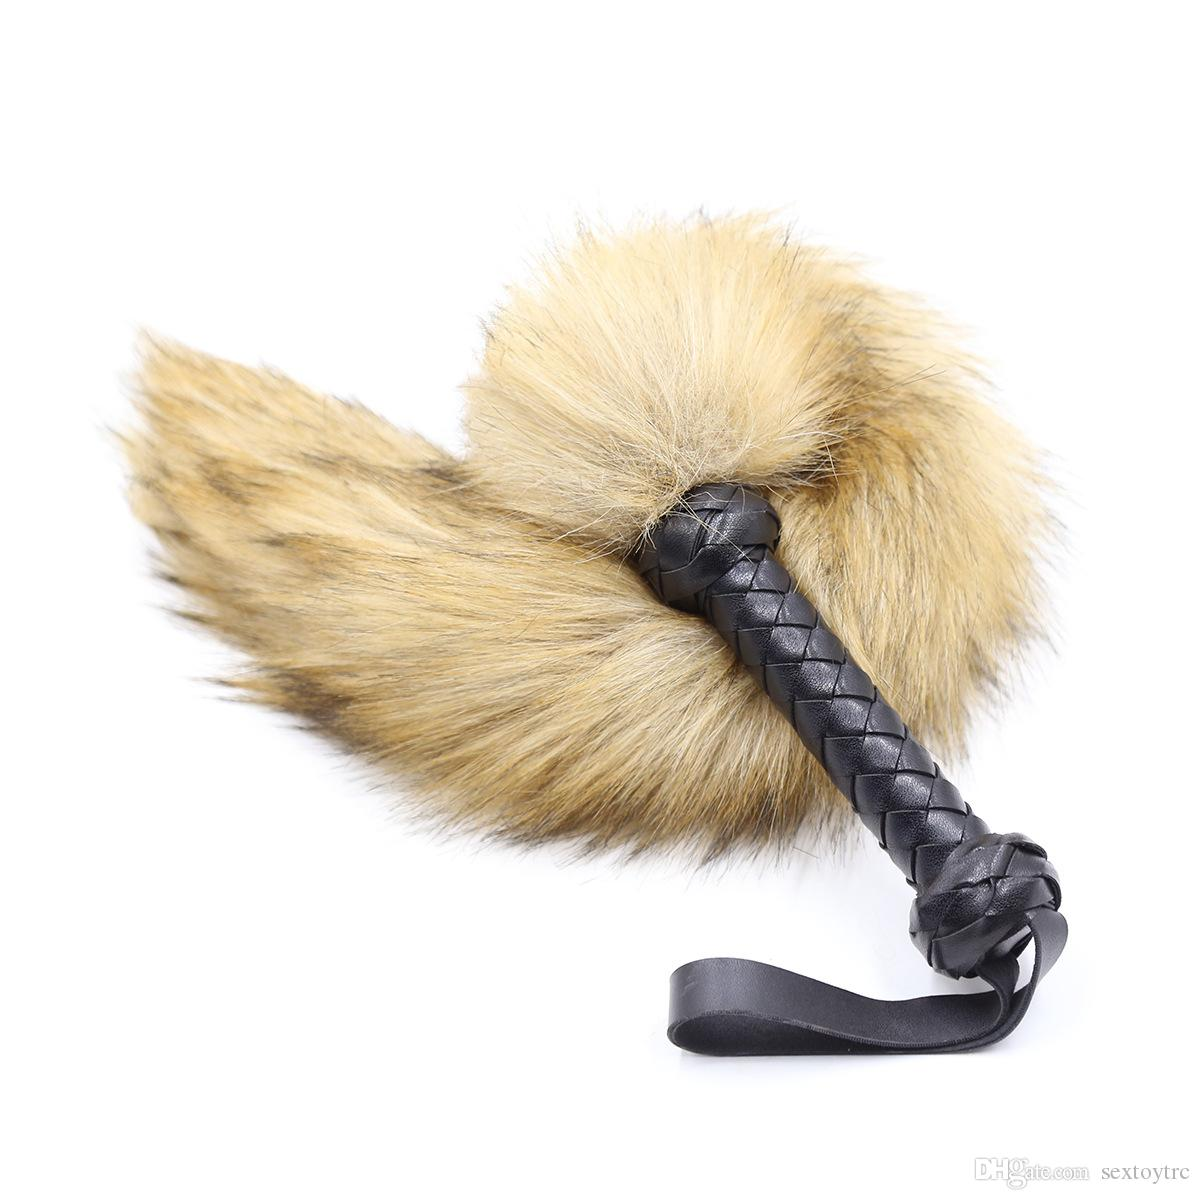 New Design Leather Fur Whip Erotic Sex Toy for BDSM Play Flogger Paddle with Hair Tail Grey Black Yellow Color Sexual Game Equipment